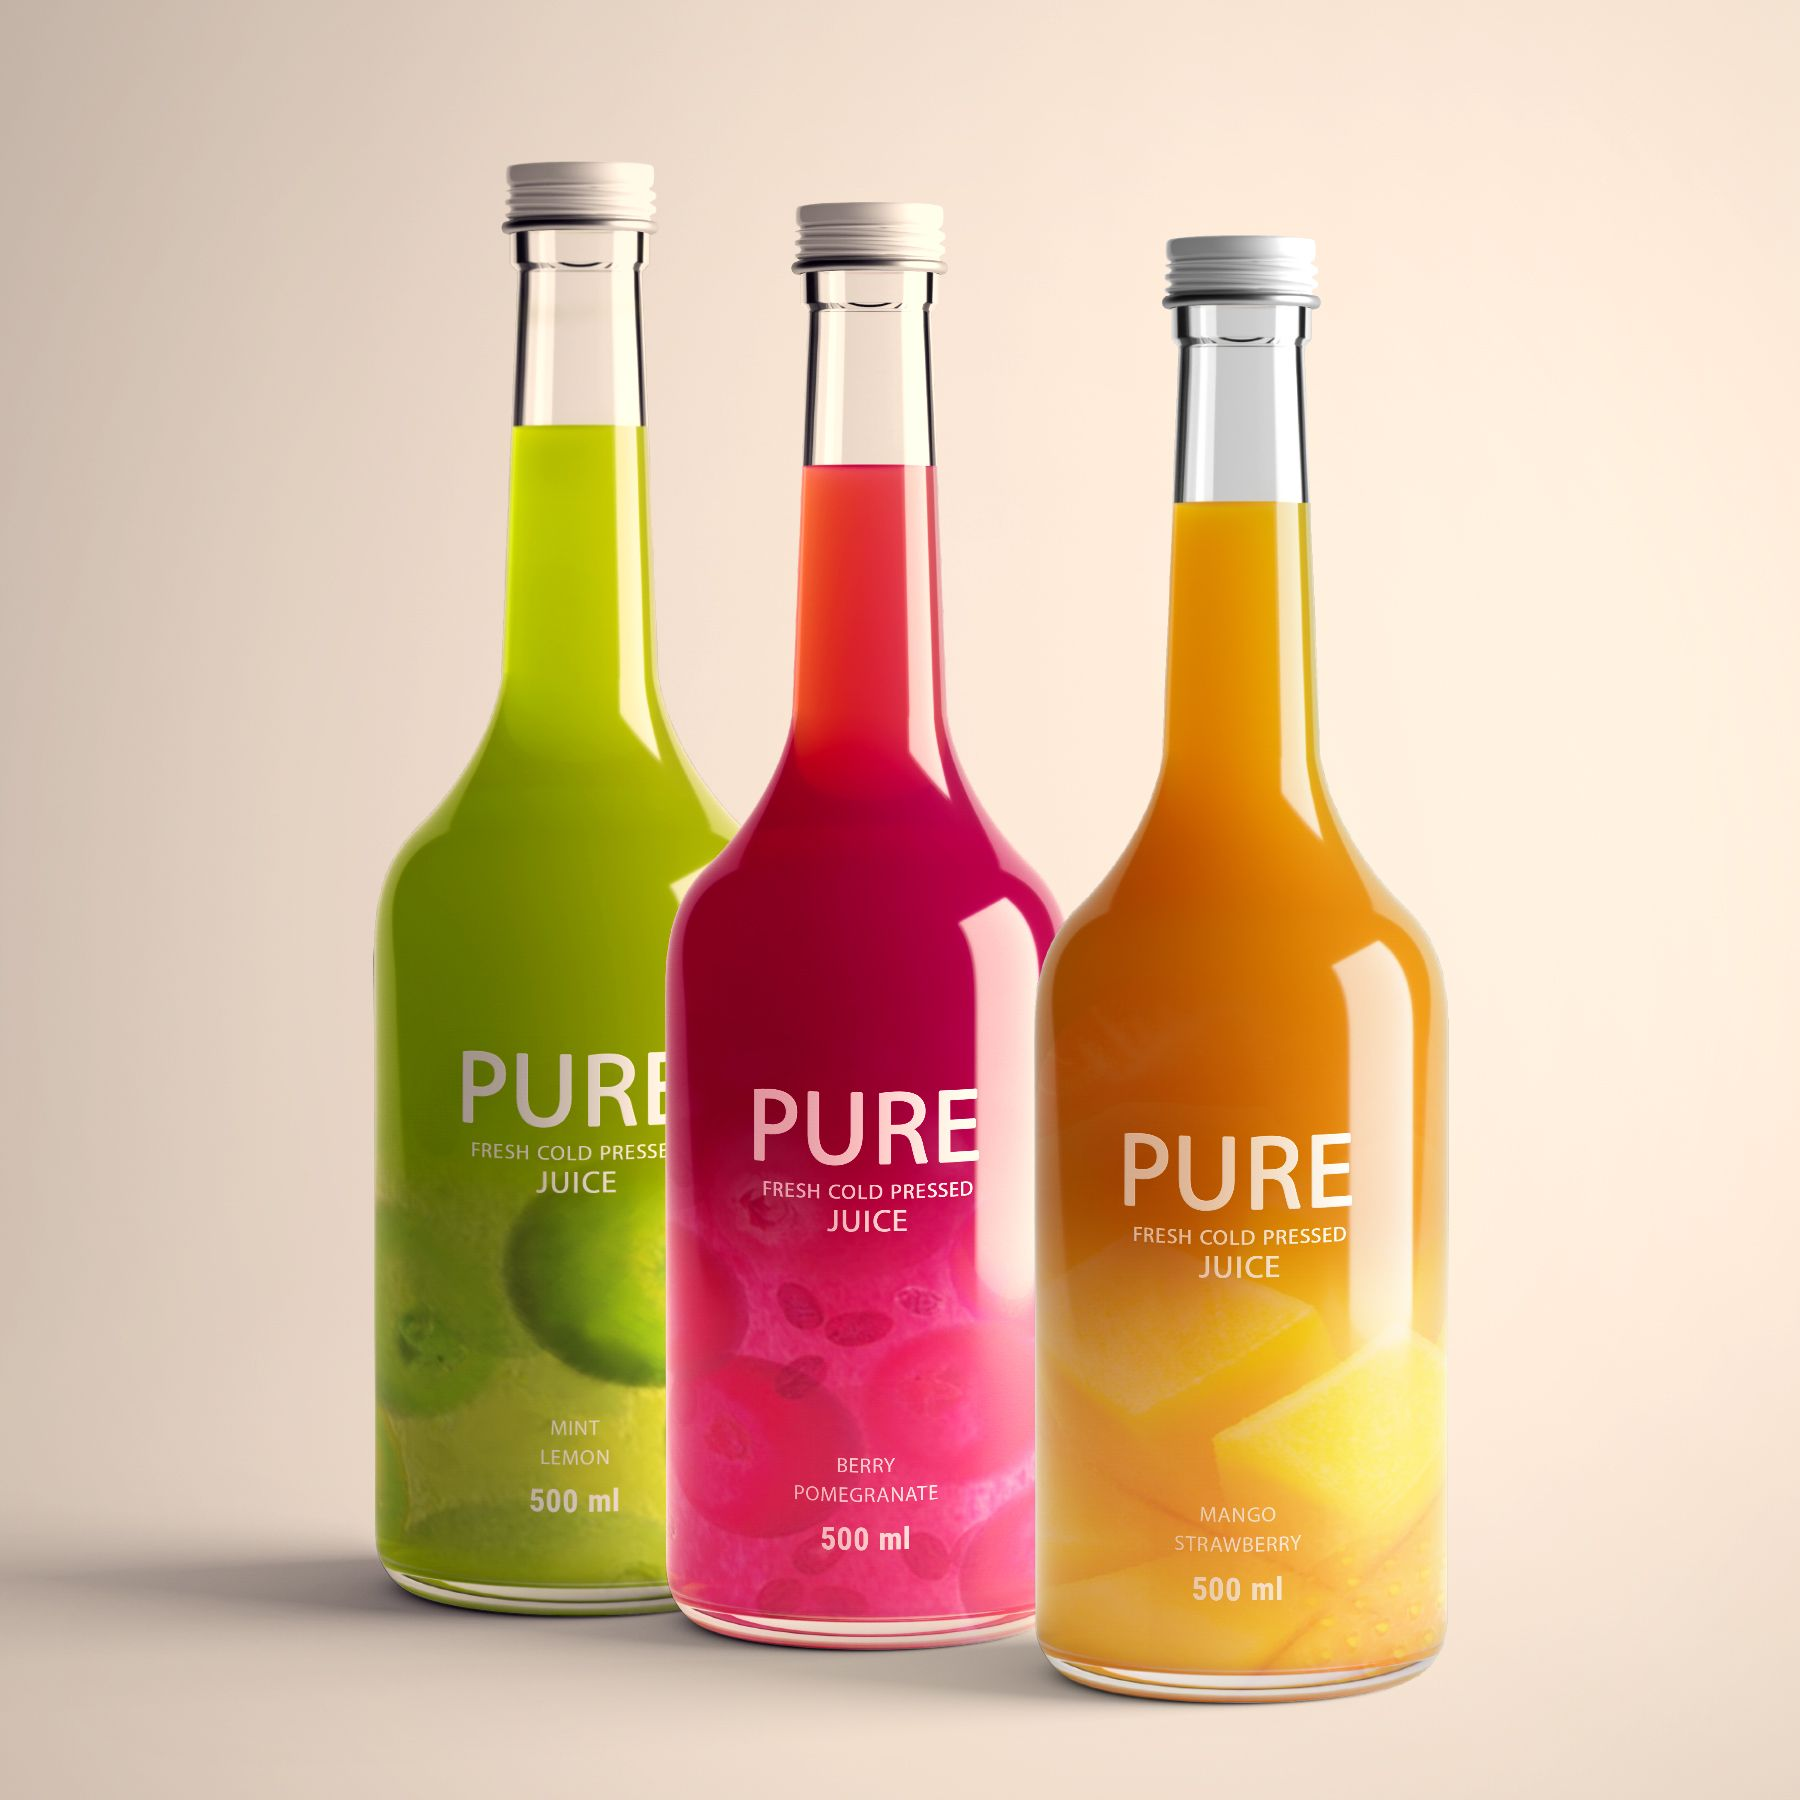 Pure Juice Packaging From Iran World Brand Design in